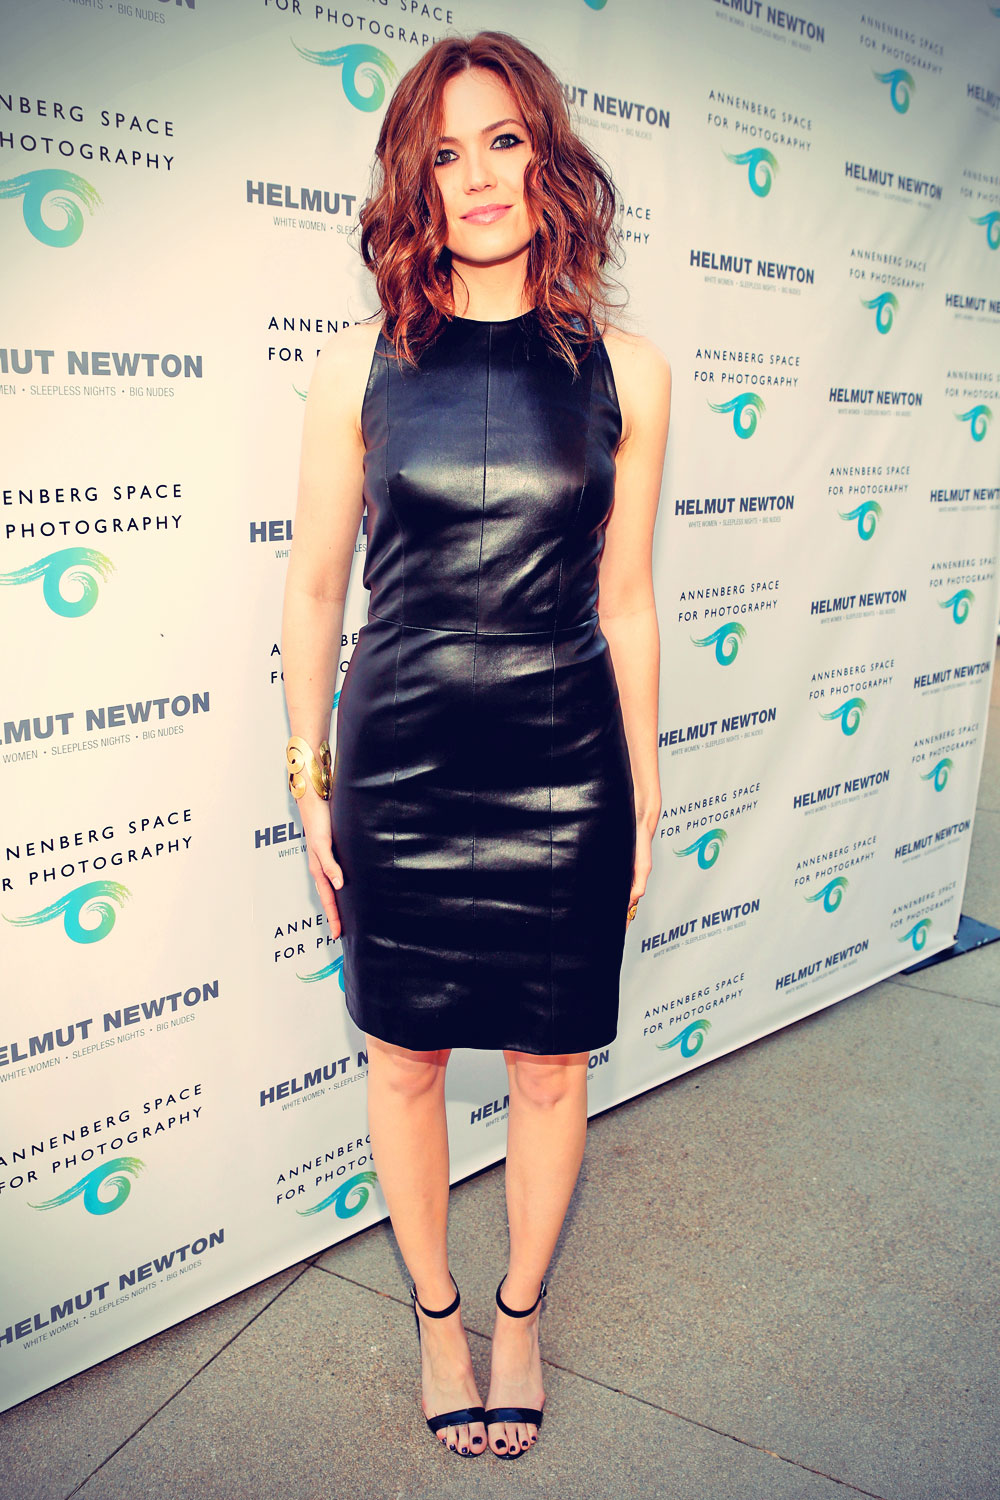 Mandy Moore attends Helmut Newton Opening Night exhibit